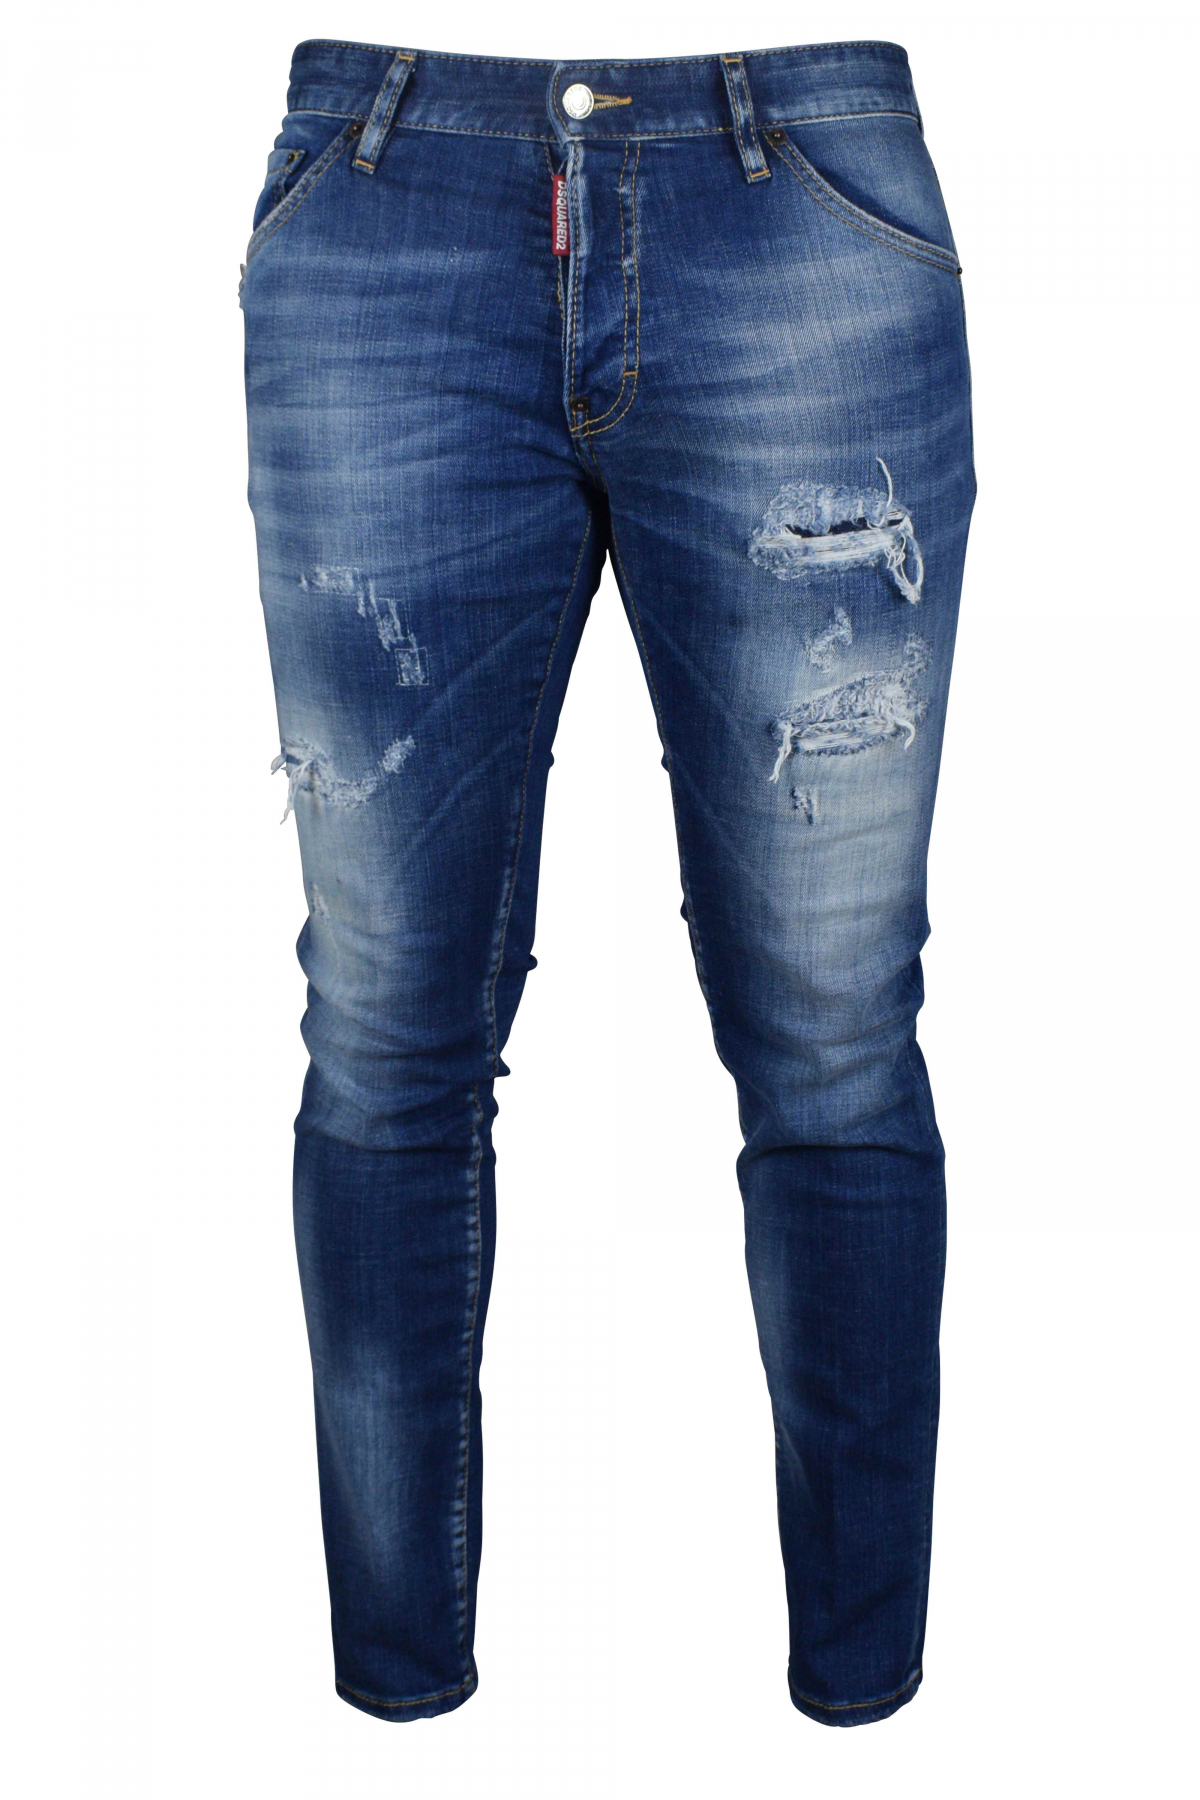 Cool Guy Jean Dsquared2 faded blue.